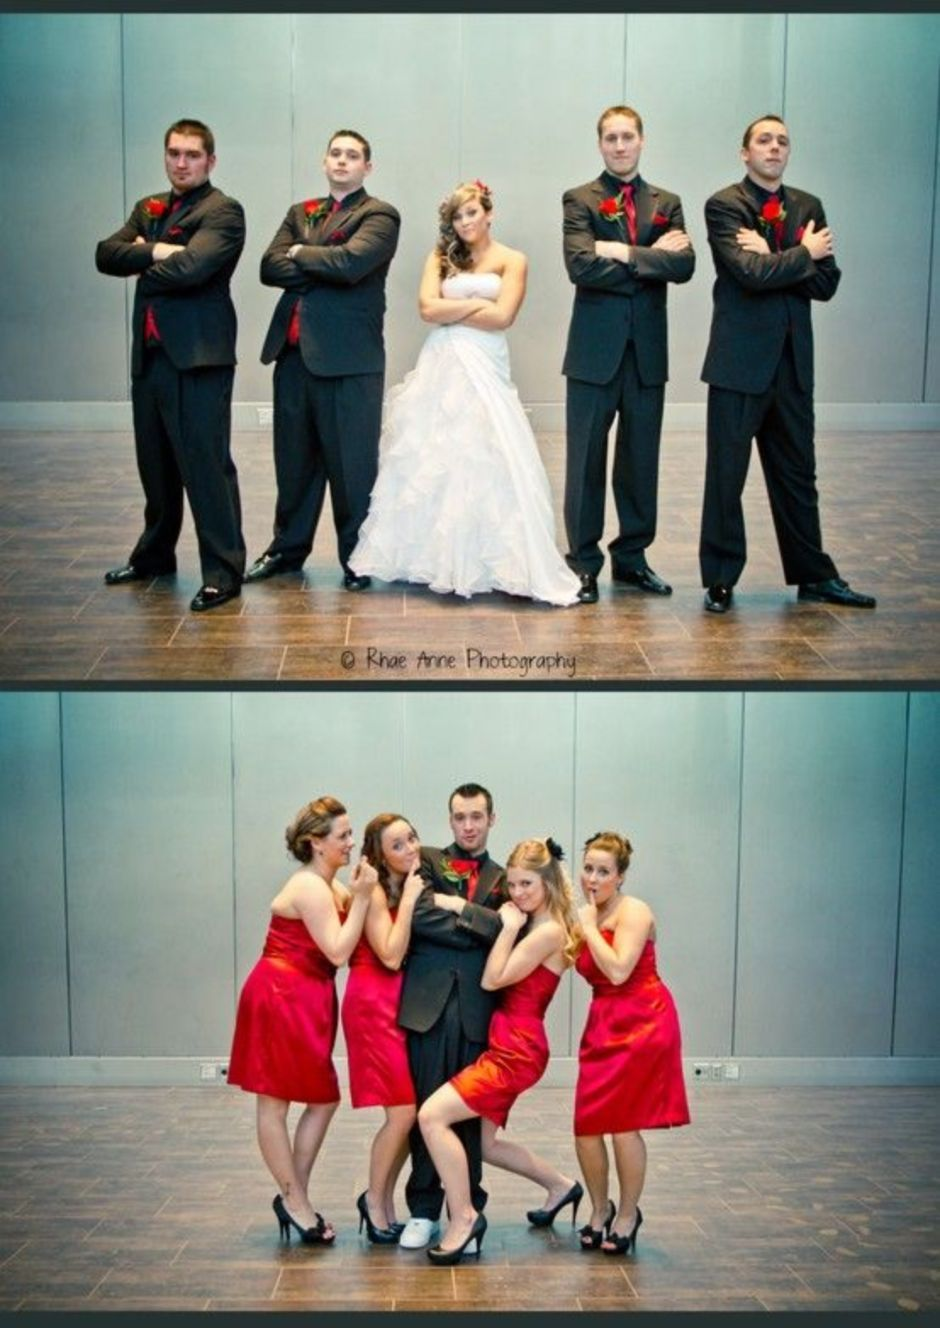 100+ Groomsmen Photos Poses Ideas You Can't Miss 25